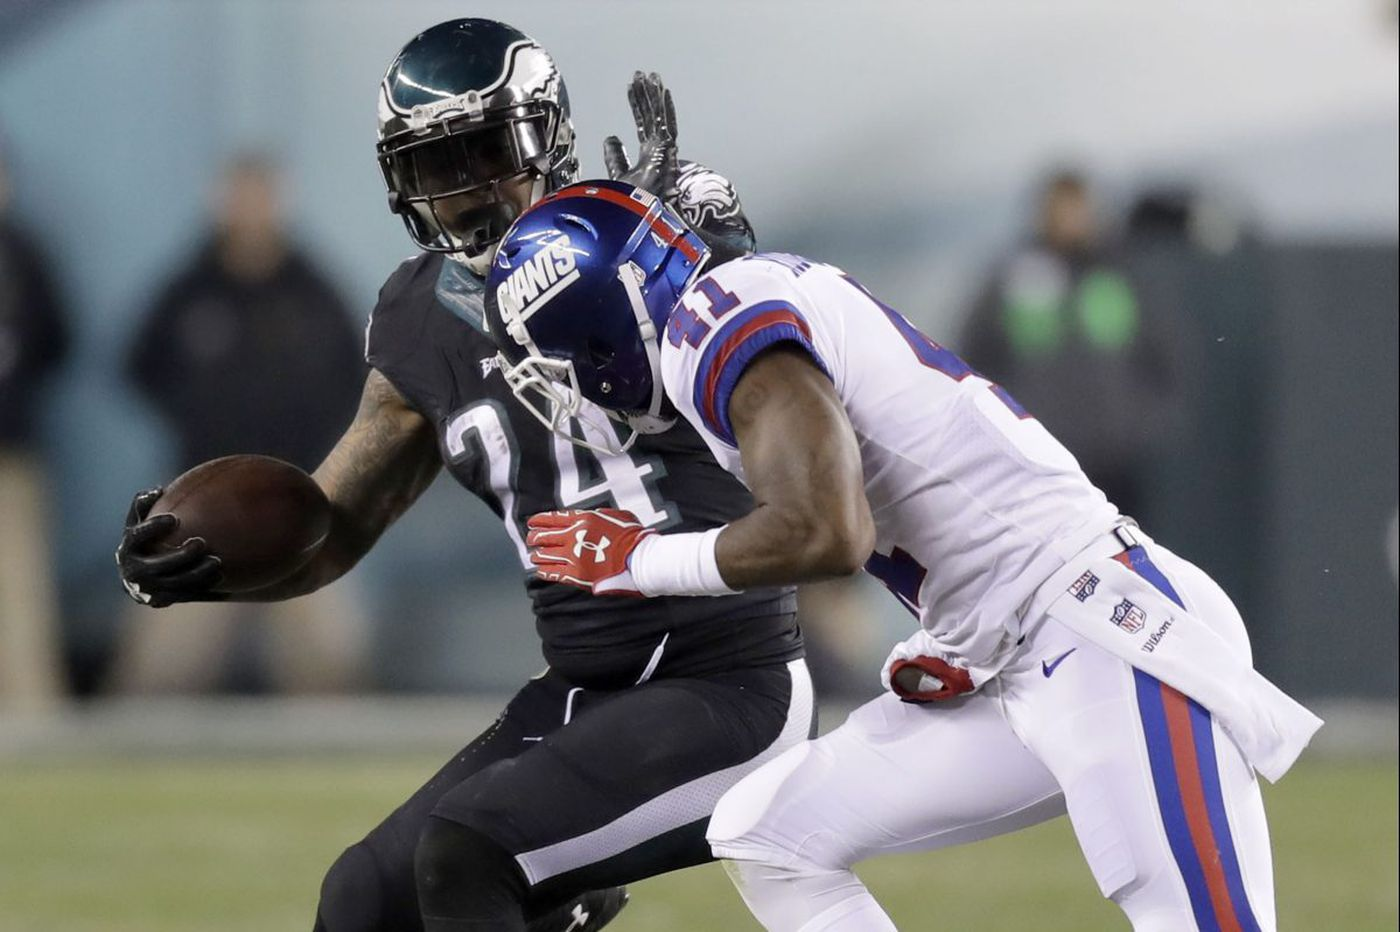 Decision on Eagles' Mathews unlikely before August